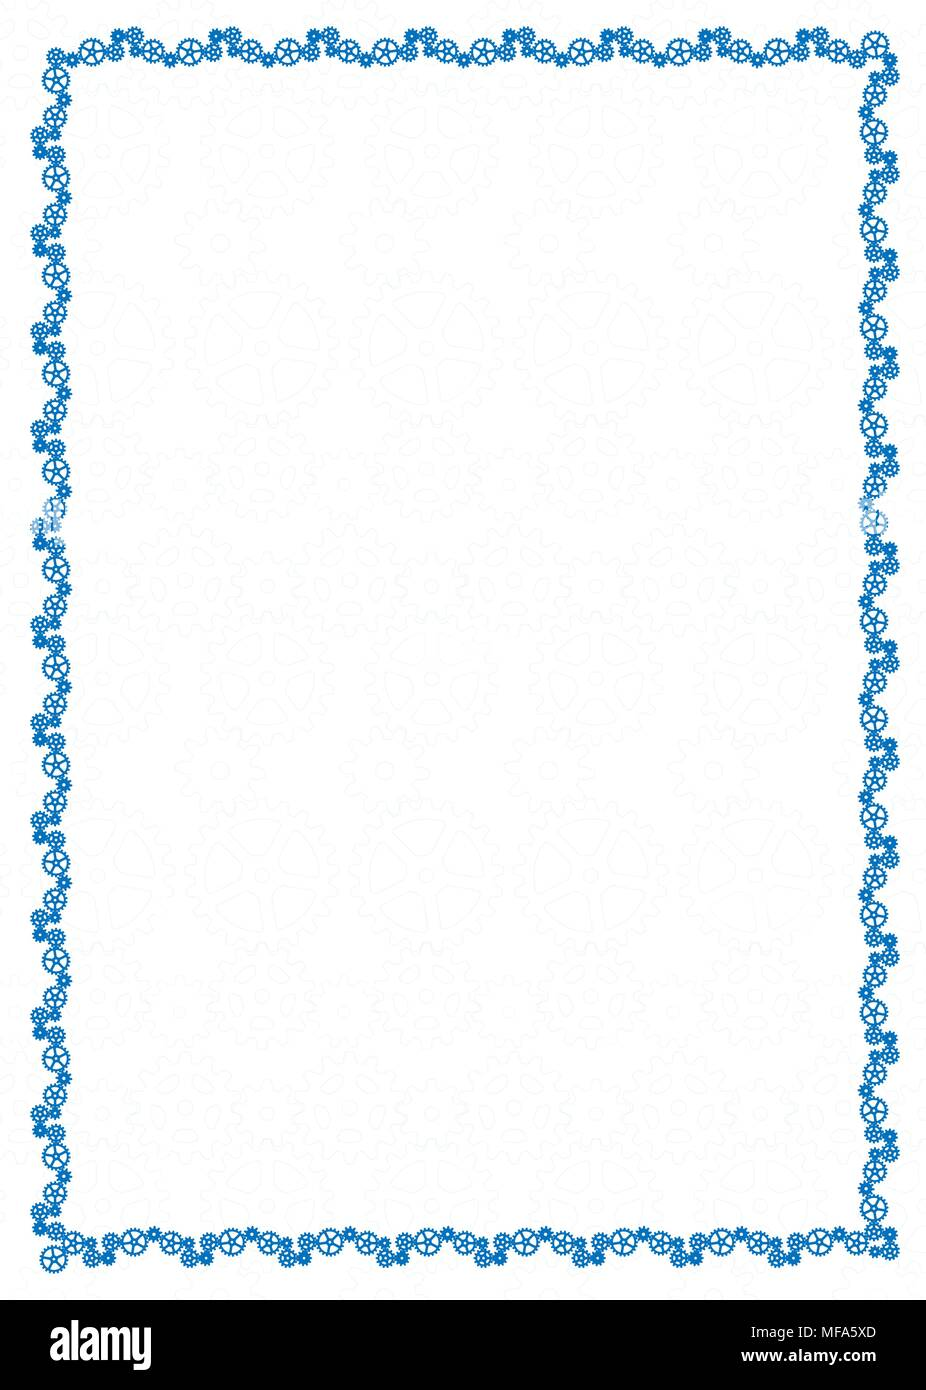 vector simple blue frame border with gear wheels for diploma